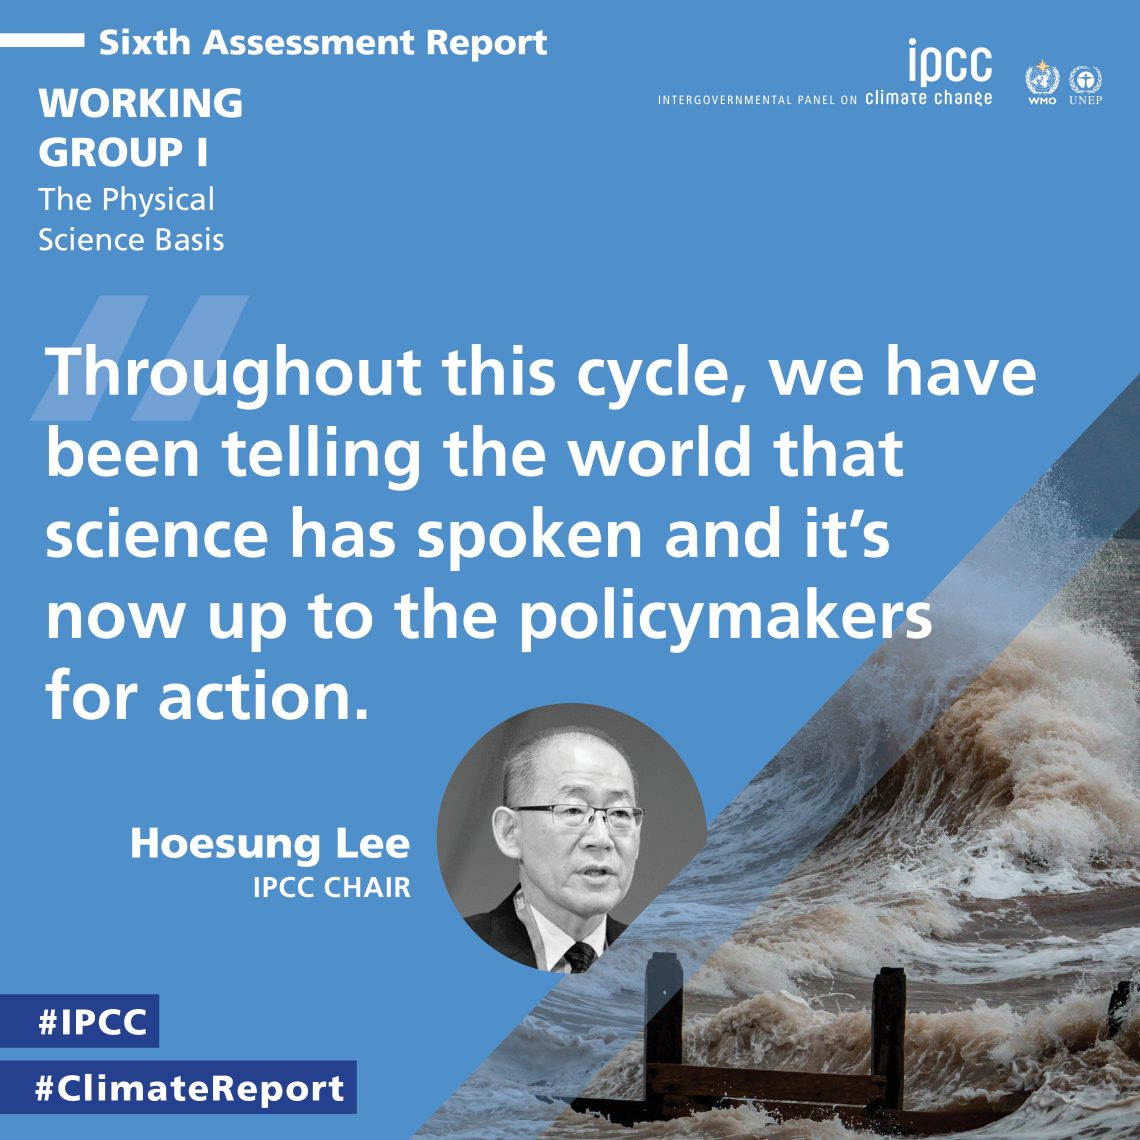 The Sixth Assessment report from the IPCC is a call to action ahead of November's COP26 climate talks in Glasgow. Source: IPCC